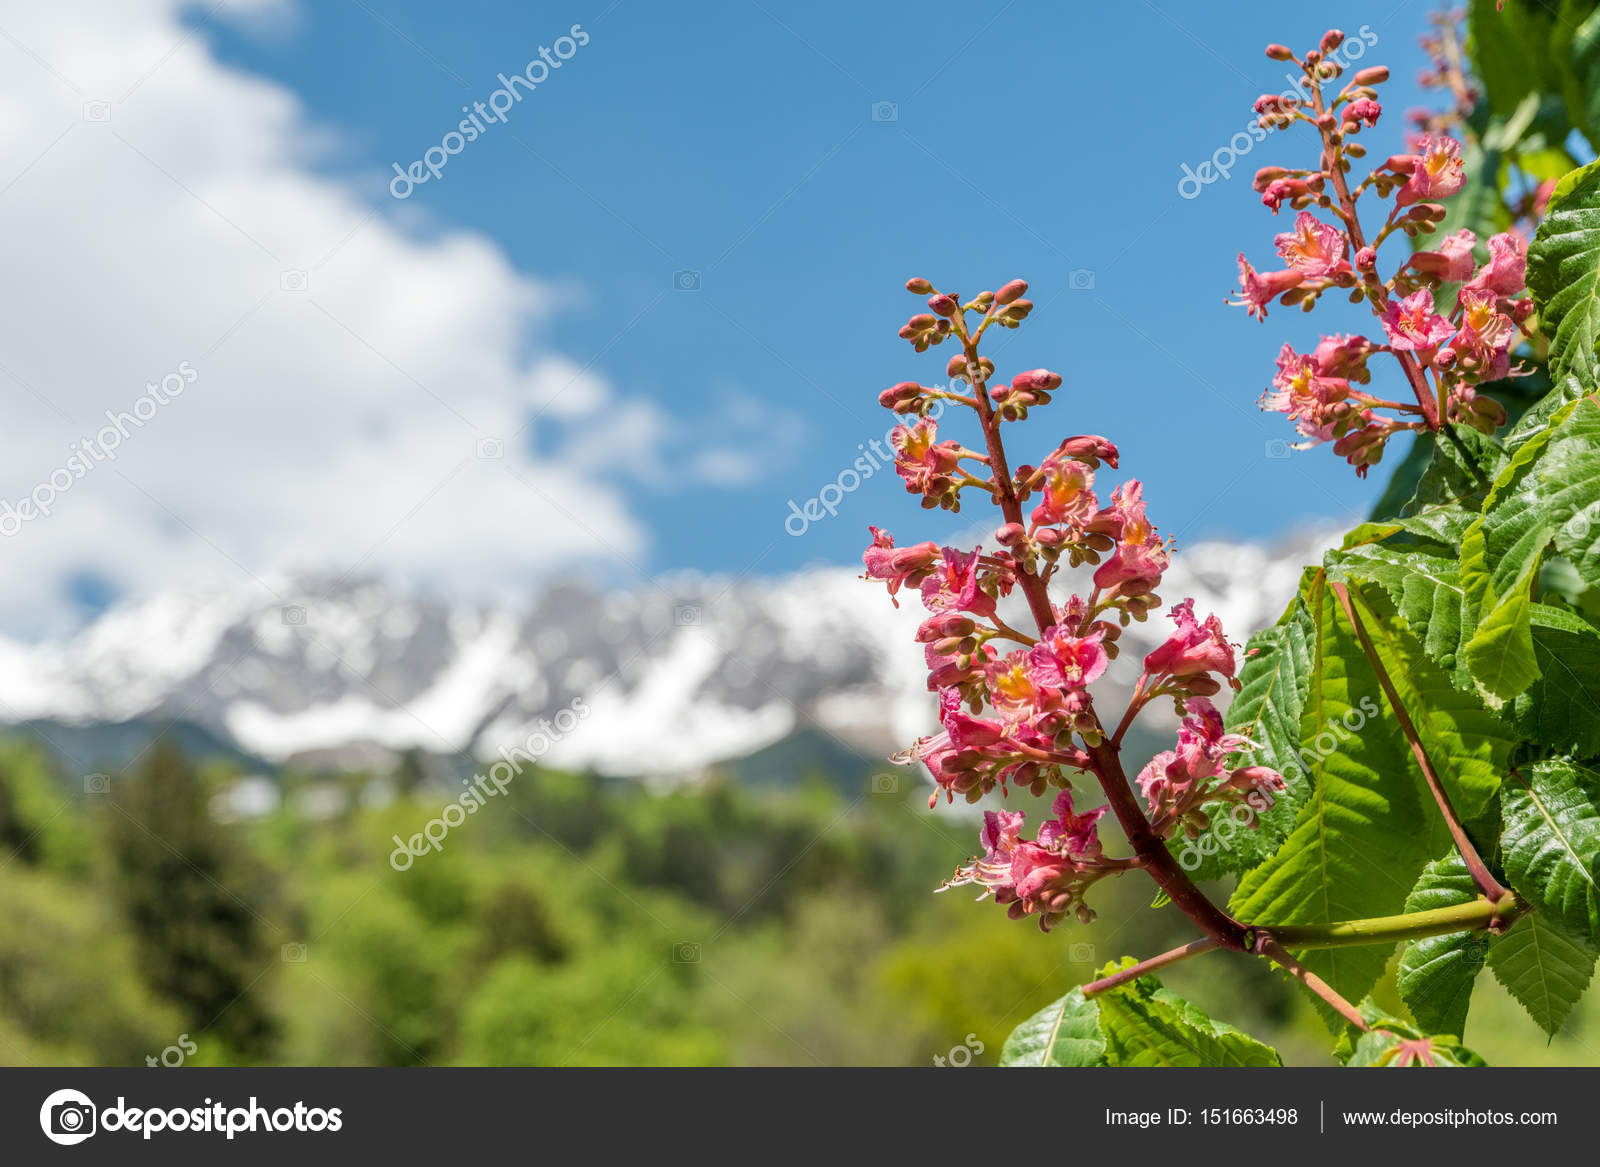 Close up of pink flowers of a chestnut tree stock photo close up during early spring of pink flowers of a chestnut tree in innsbruck austria in the background are the alps with snow on the tops mightylinksfo Gallery